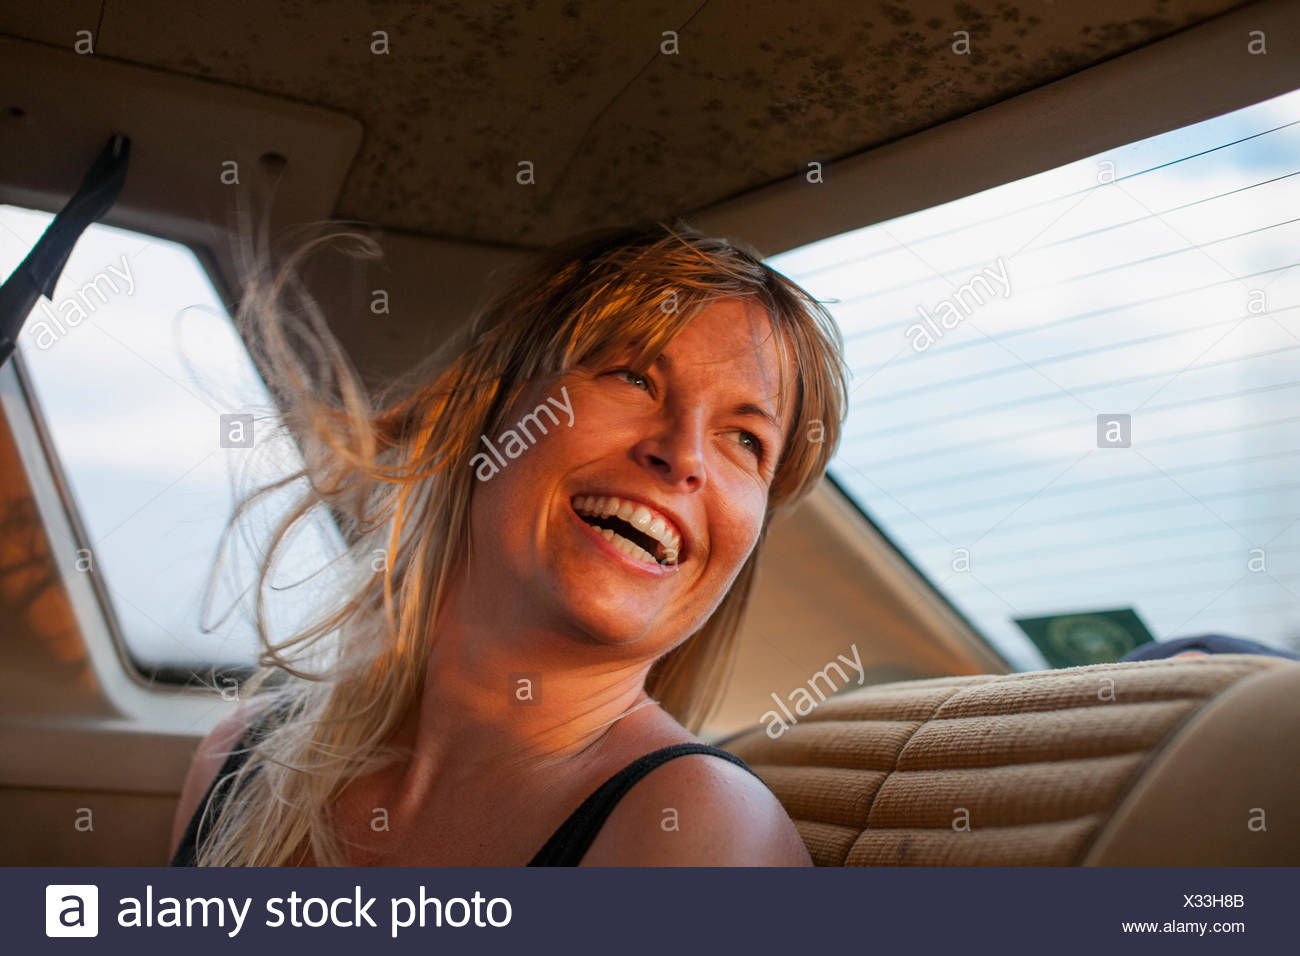 Blonde woman laughing on back seat of car - Stock Image